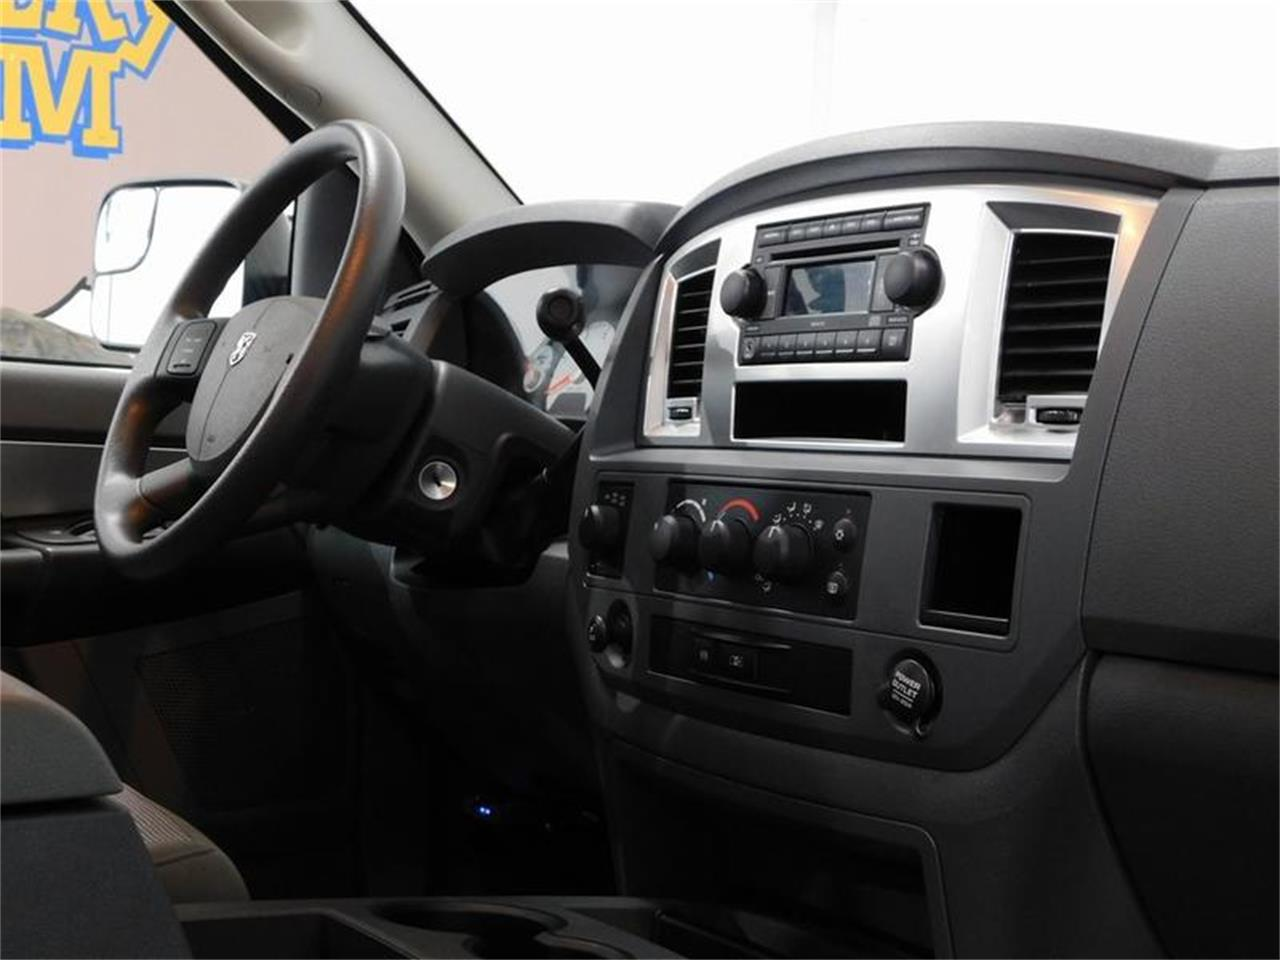 2009 Dodge Ram 3500 for sale in Hamburg, NY – photo 25